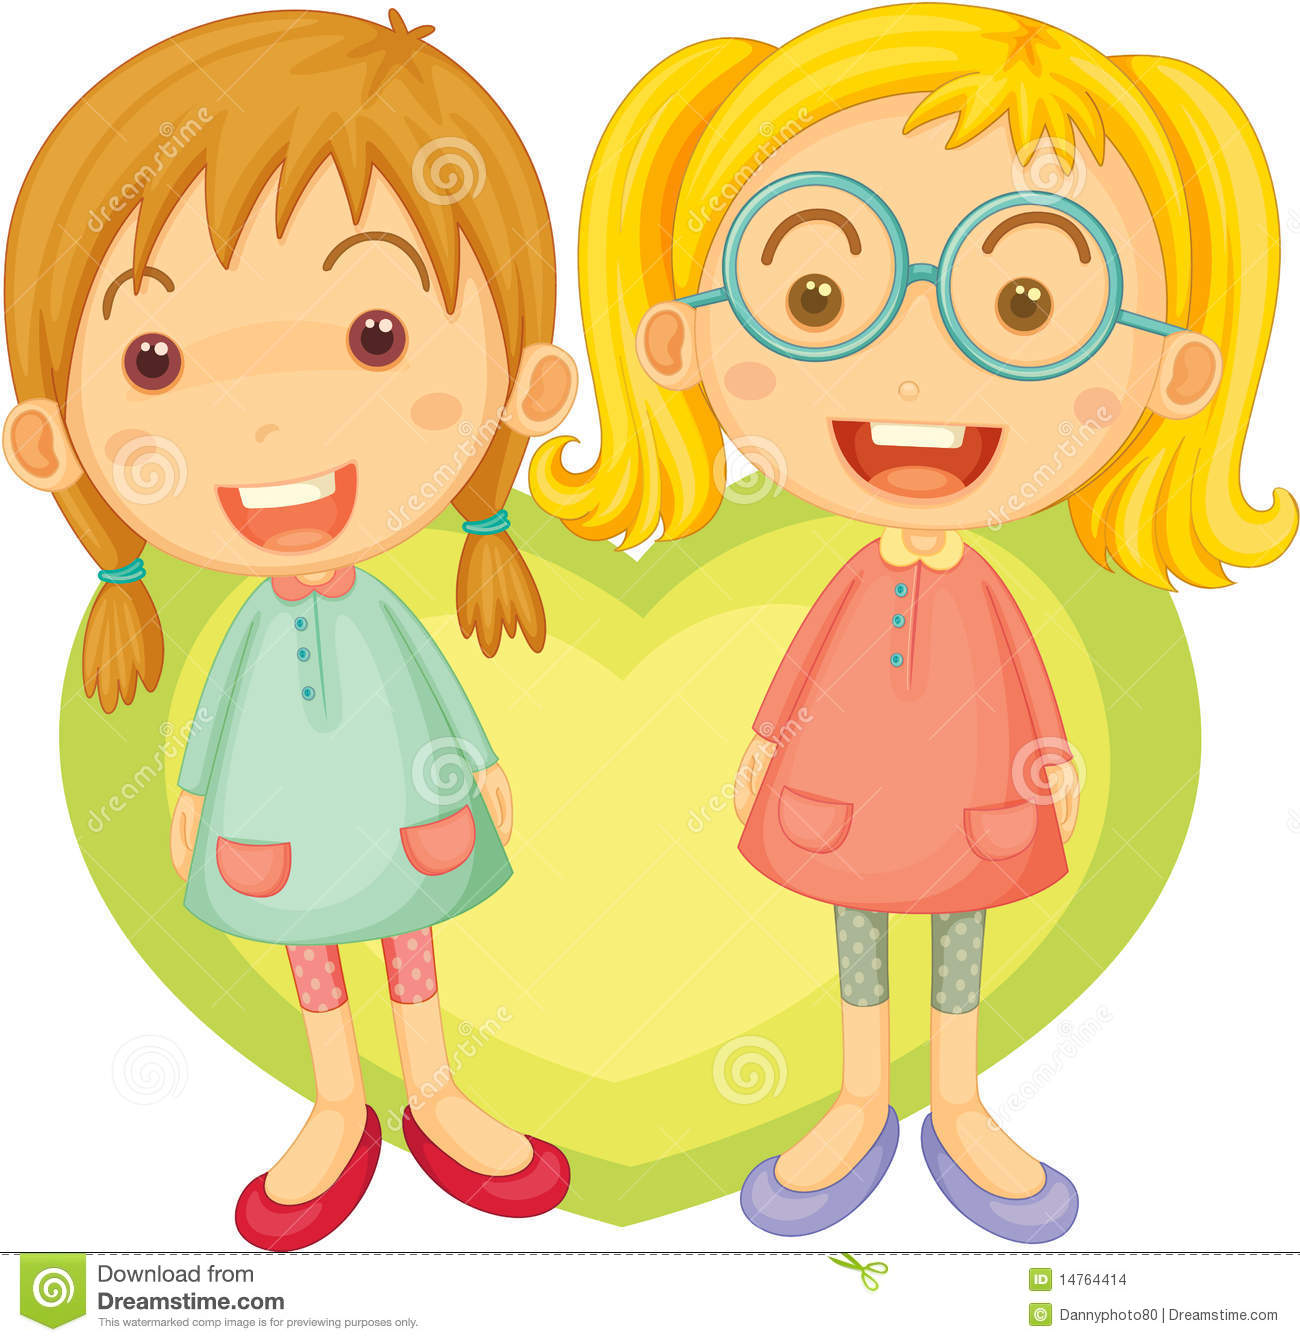 2 Girls Clipart images.